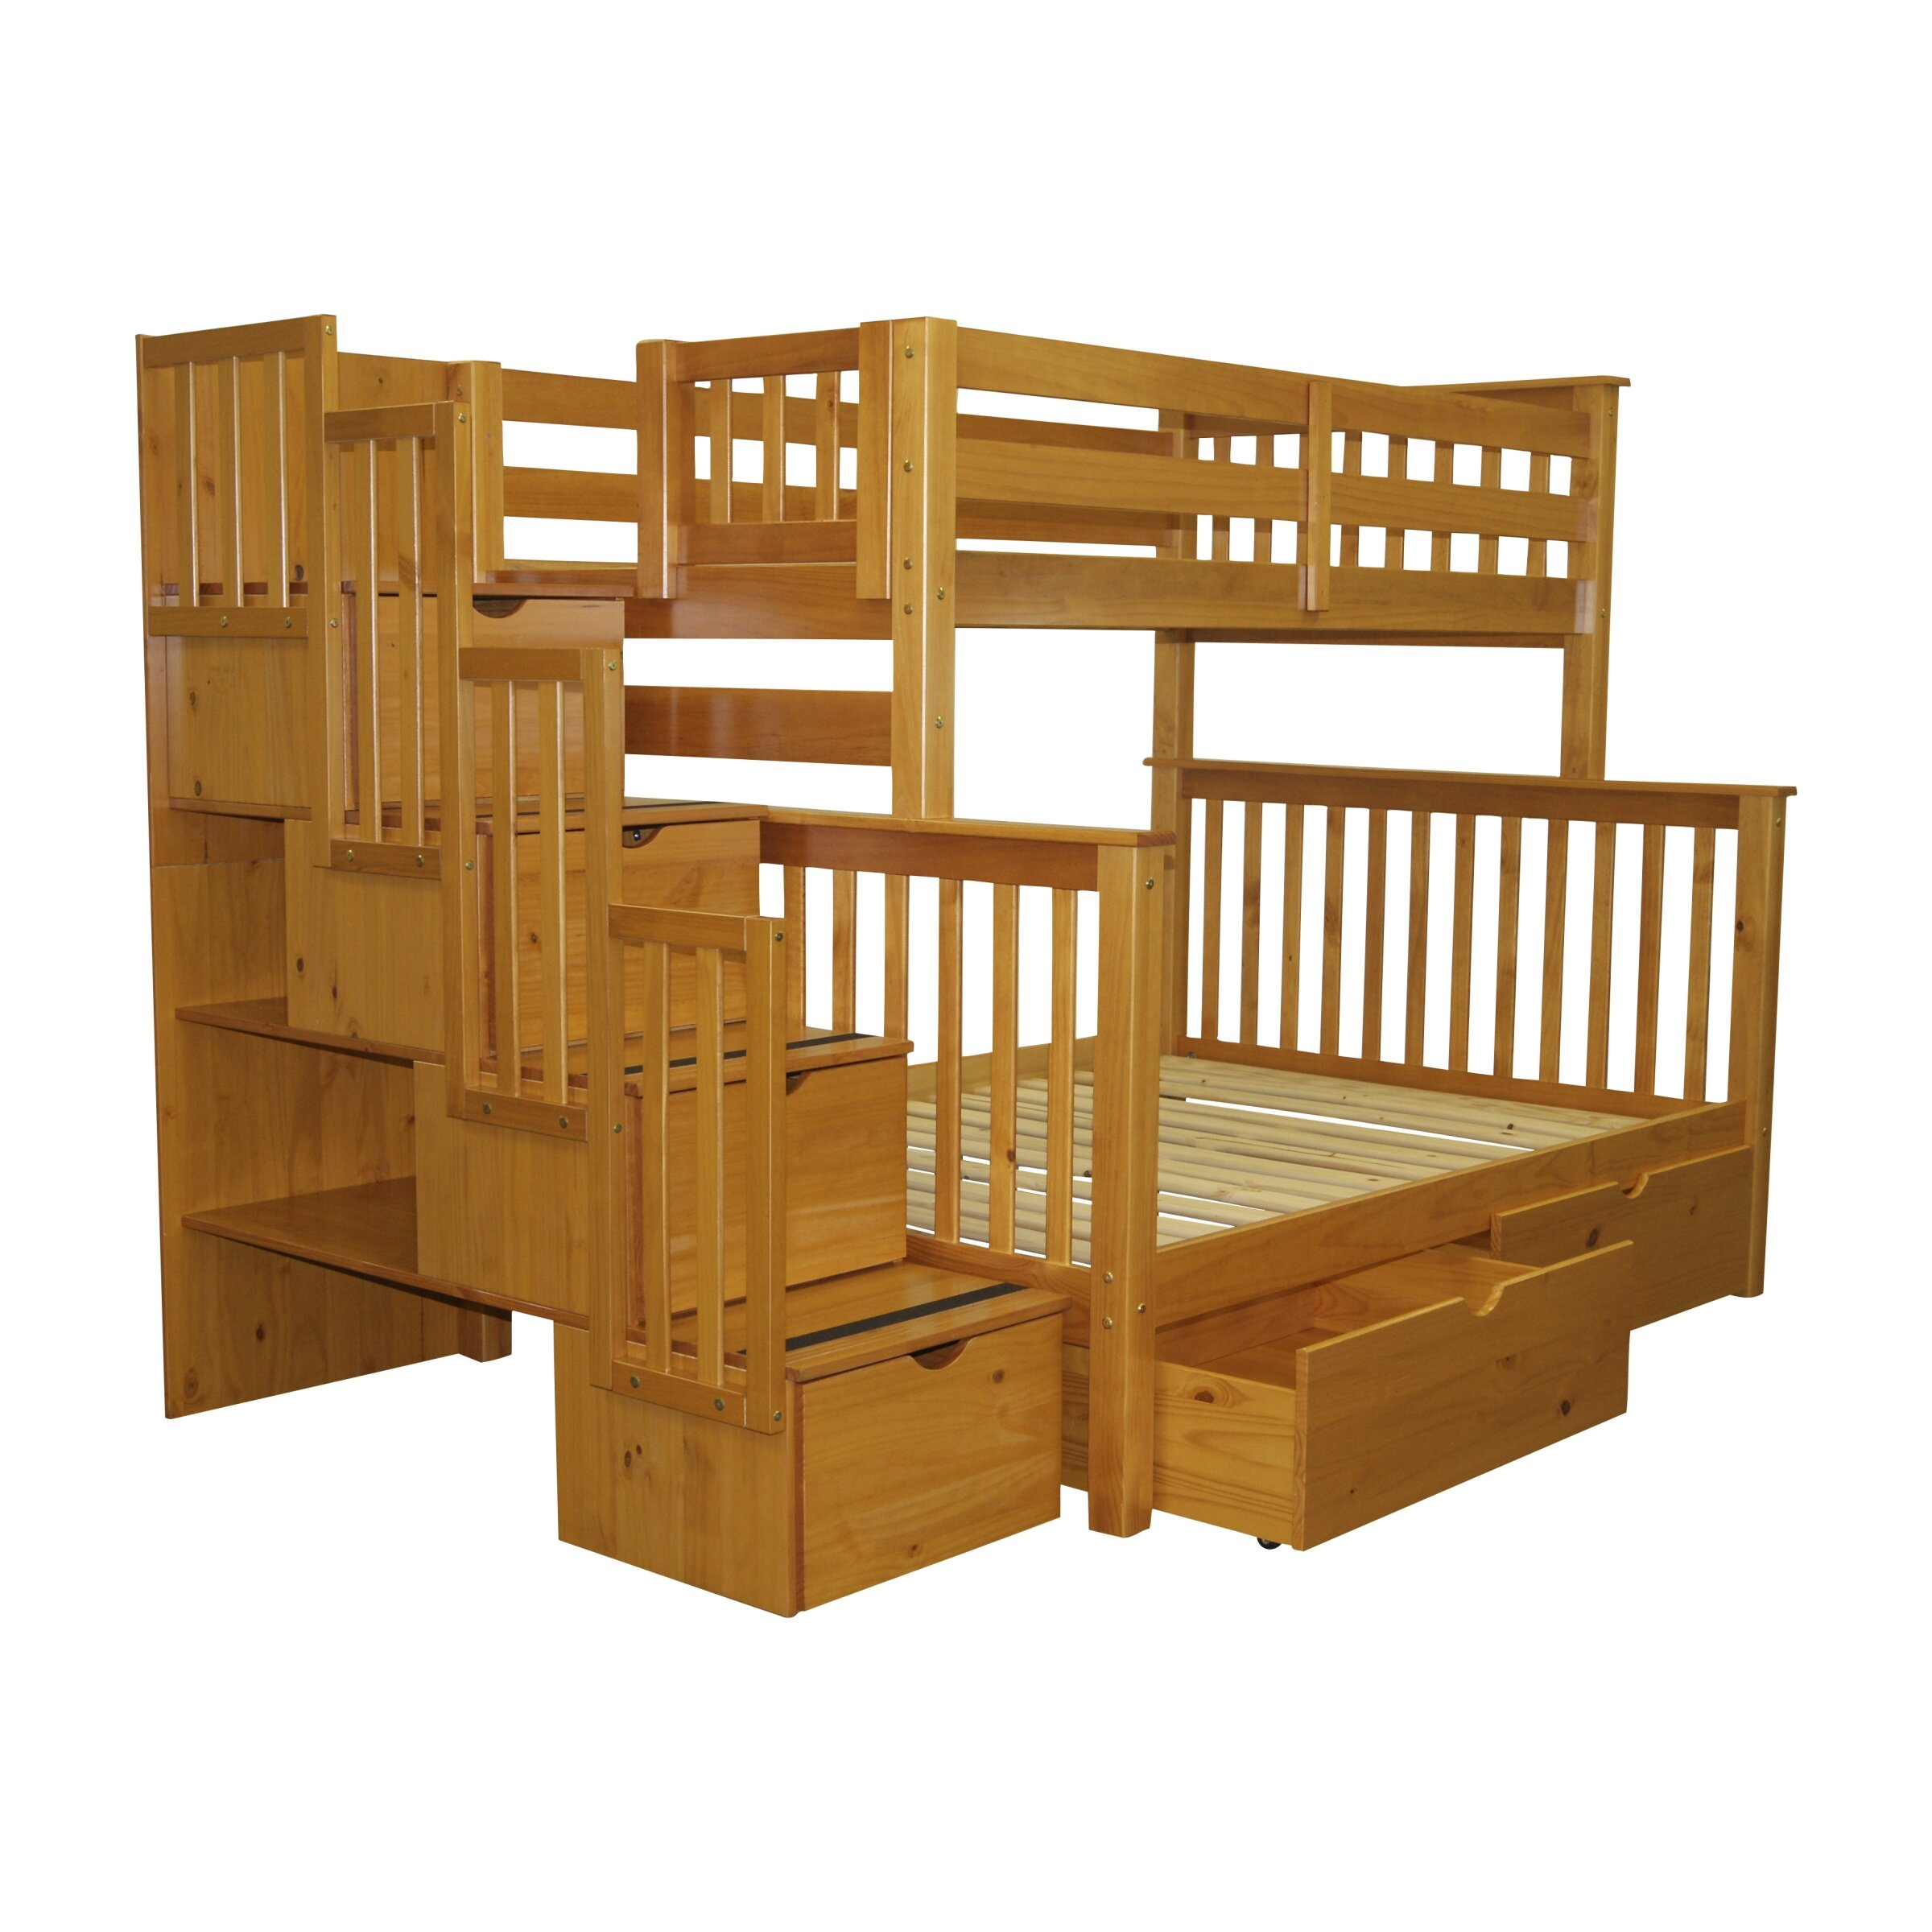 Bed Over Stair Box With Storage And Stairs: Bedz King Twin Over Full Bunk Bed With Storage & Reviews